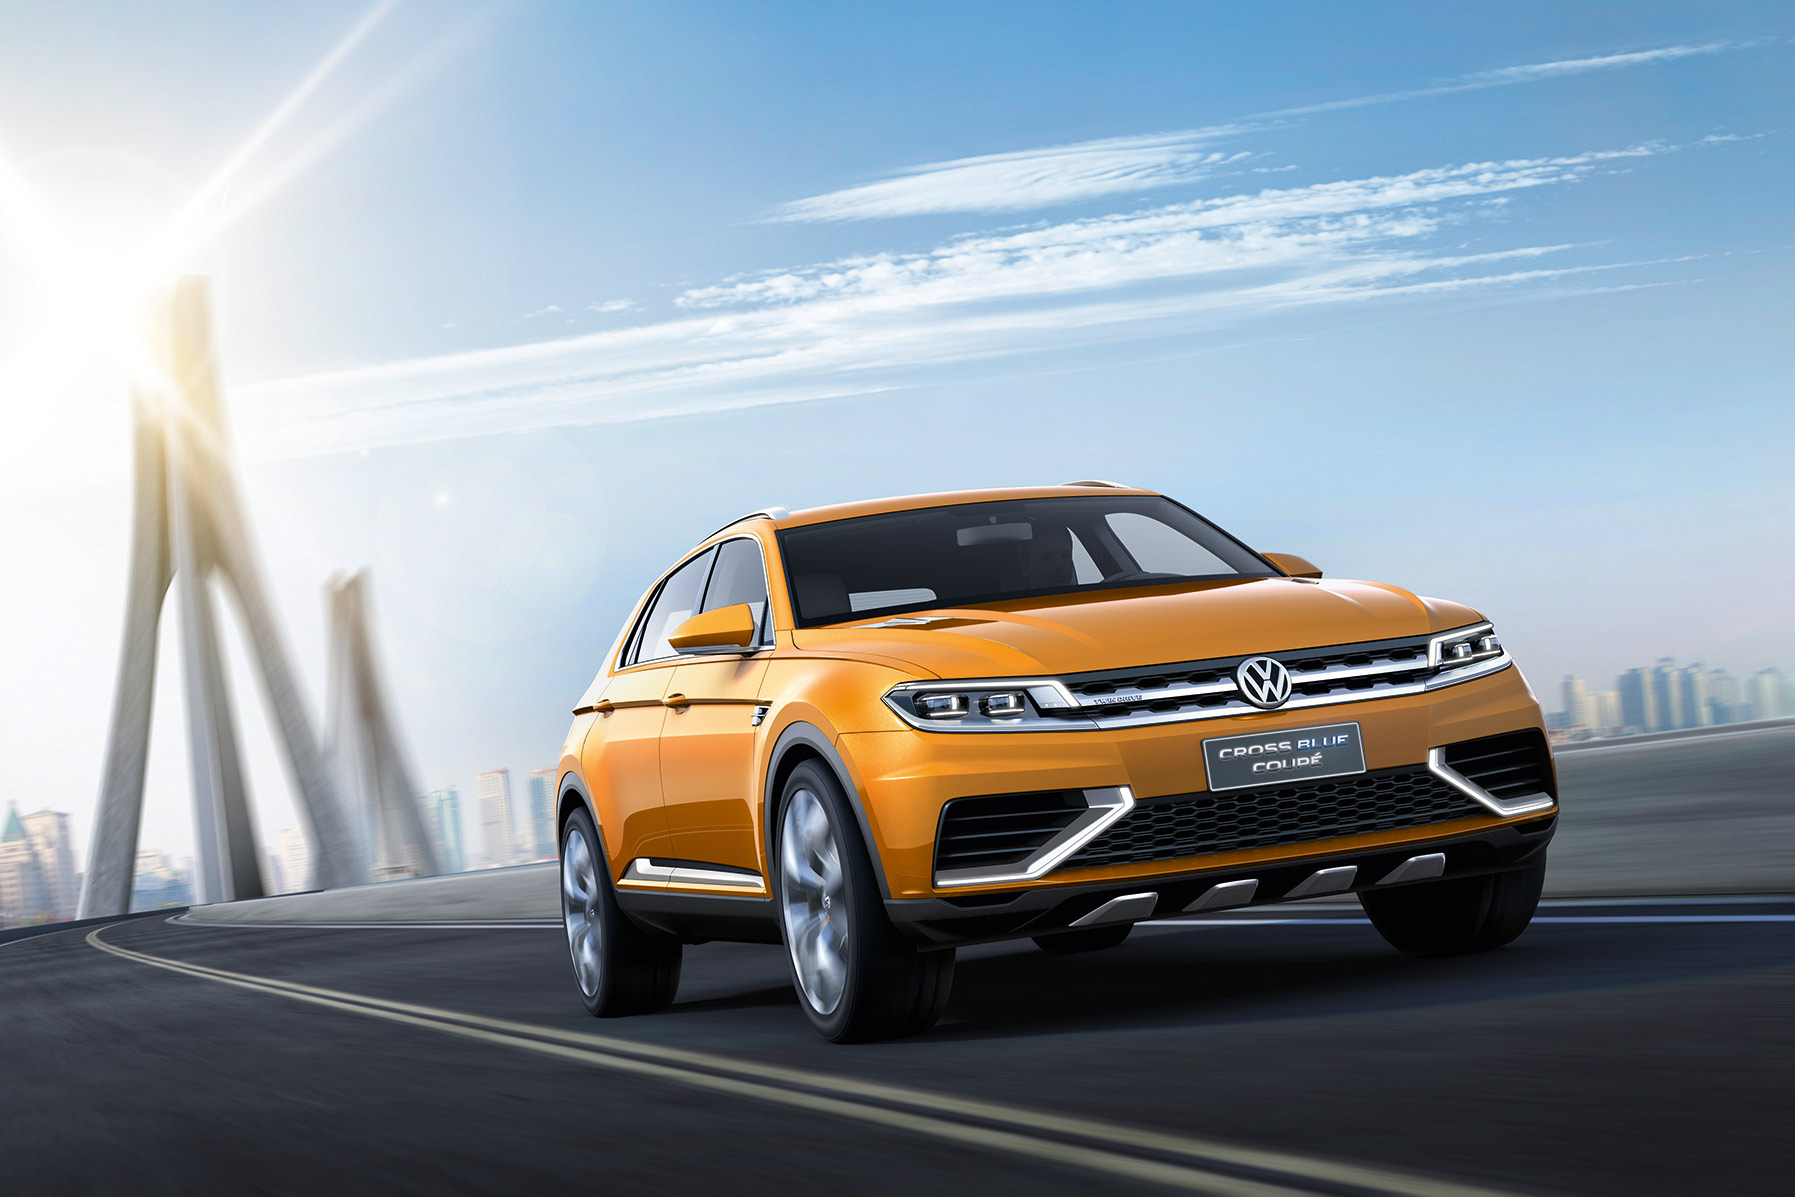 volkswagen-crossblue-coupe-concept-032